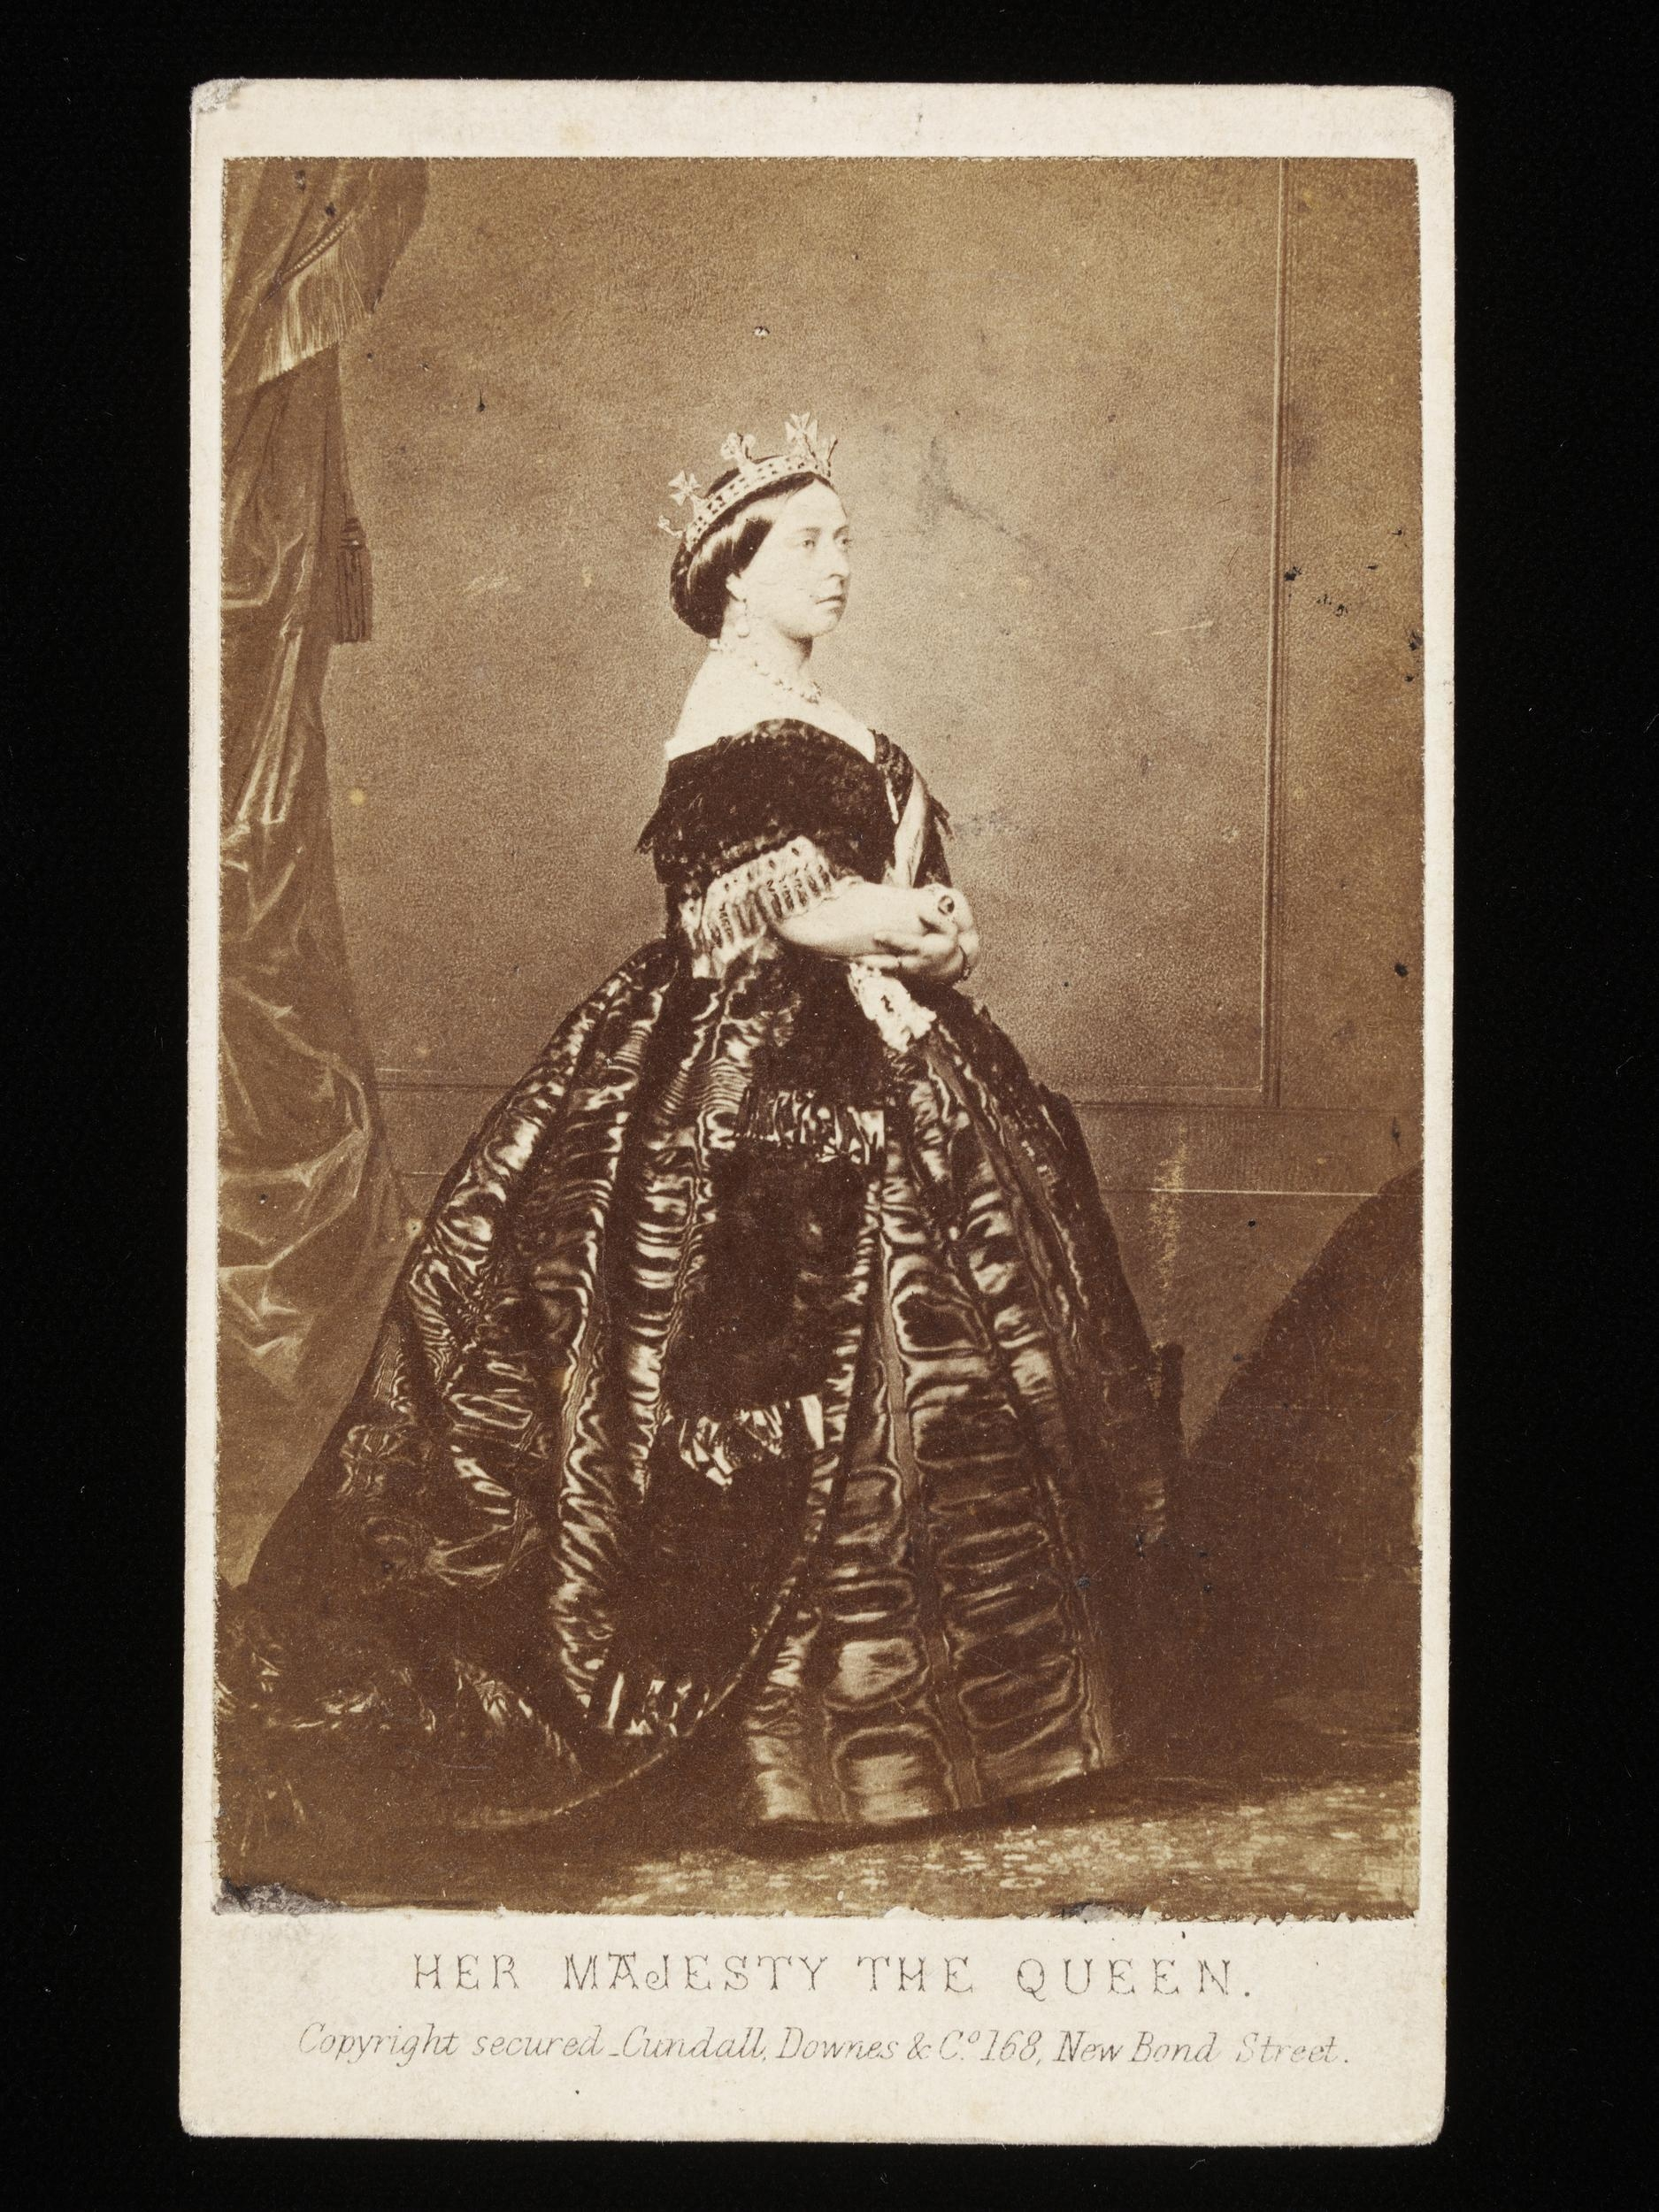 Queen Victoria, disapproving of our desire to vote. Easy for you to say, when you rule everything! - Courtesy of the Victoria and Albert Museum